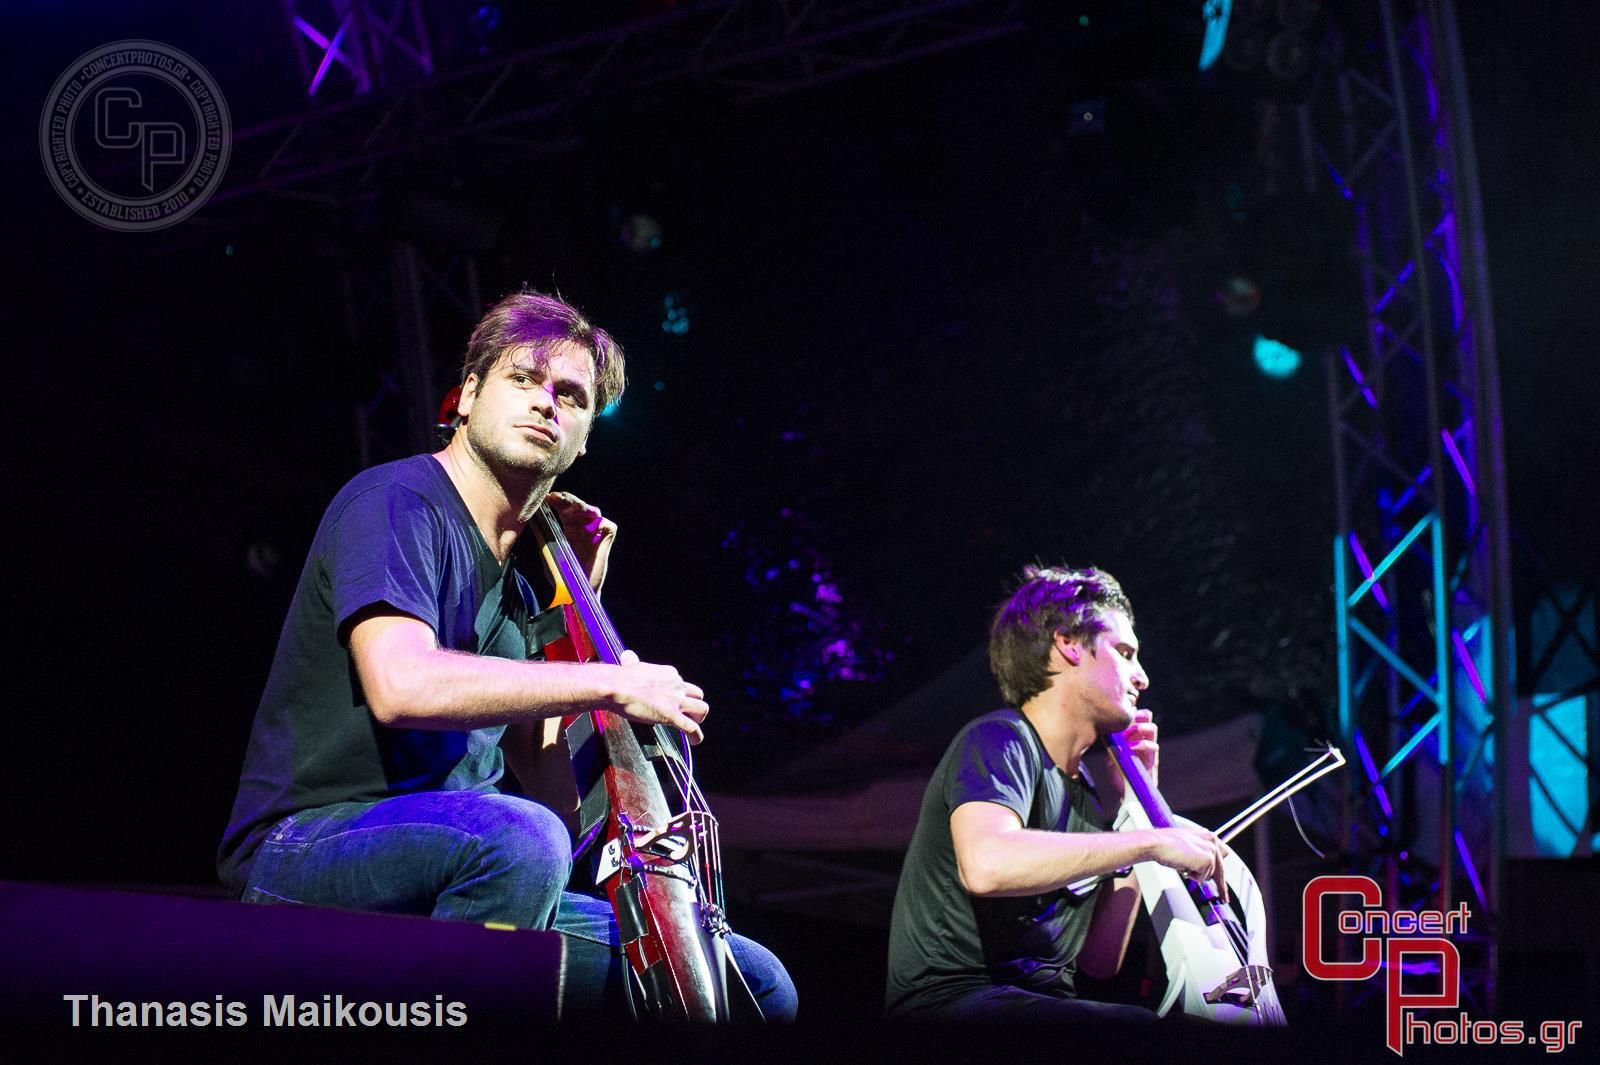 2Cellos-2Cellos Technopolis photographer: Thanasis Maikousis - untitled shoot-6249